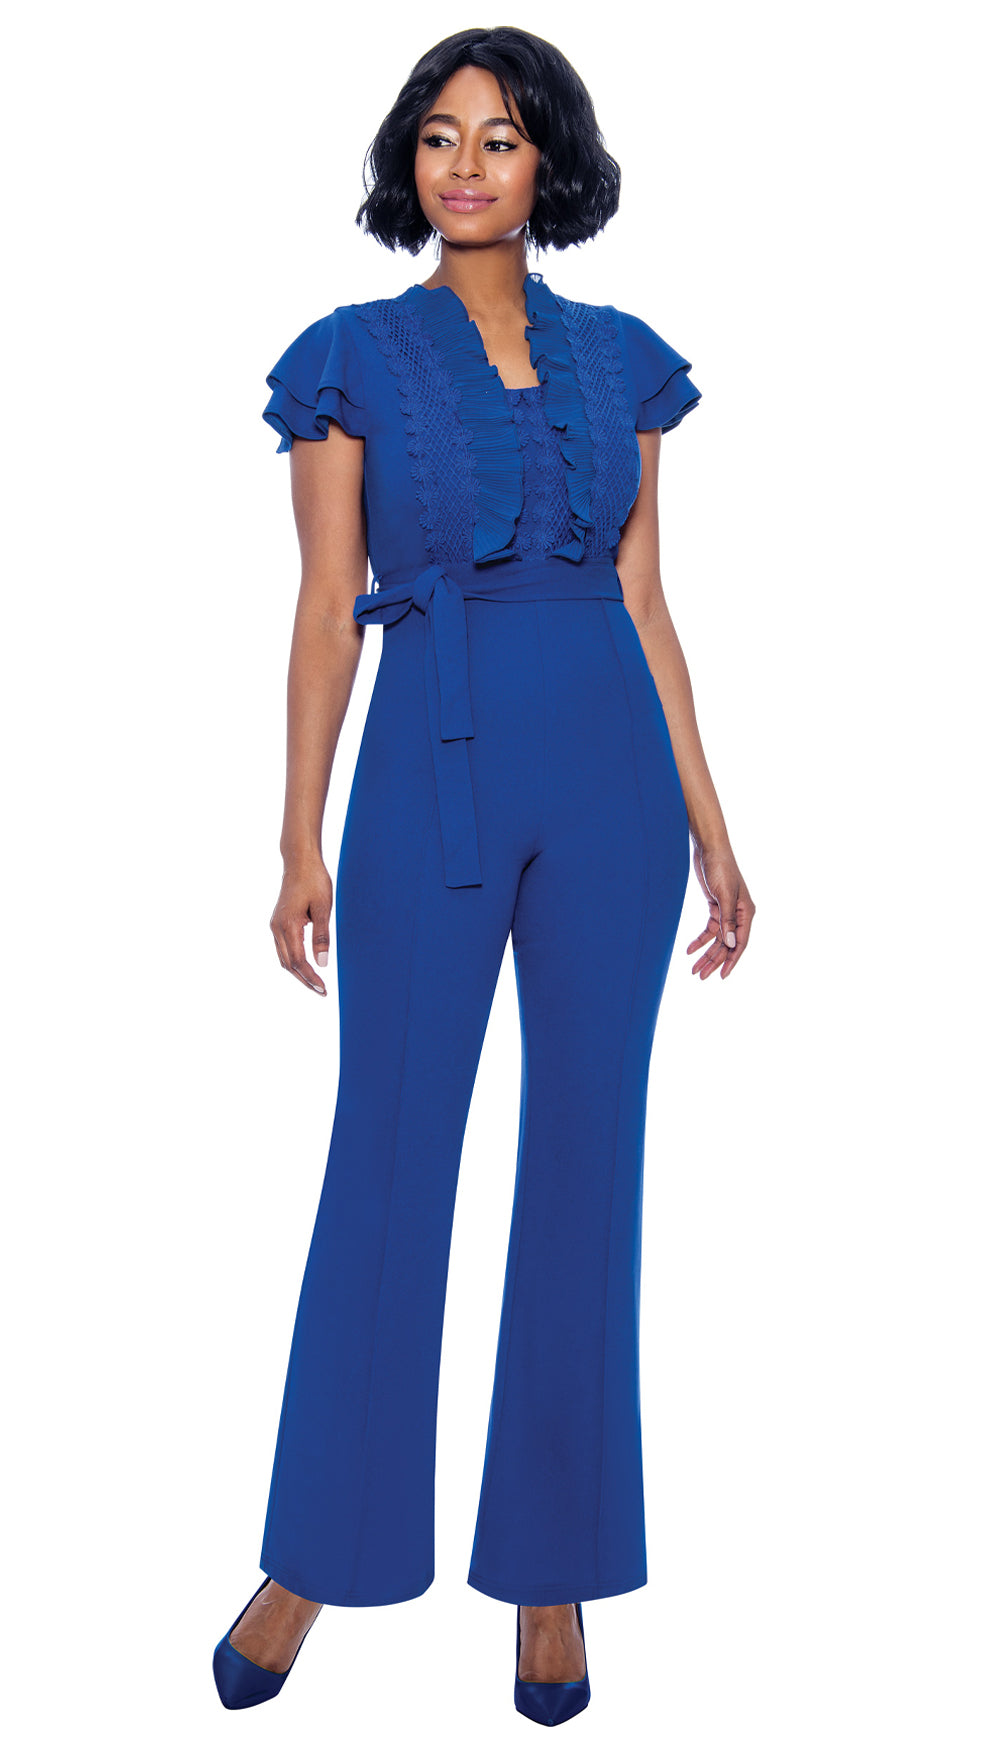 Terramina Jump Suit  7828 - Church Suits For Less